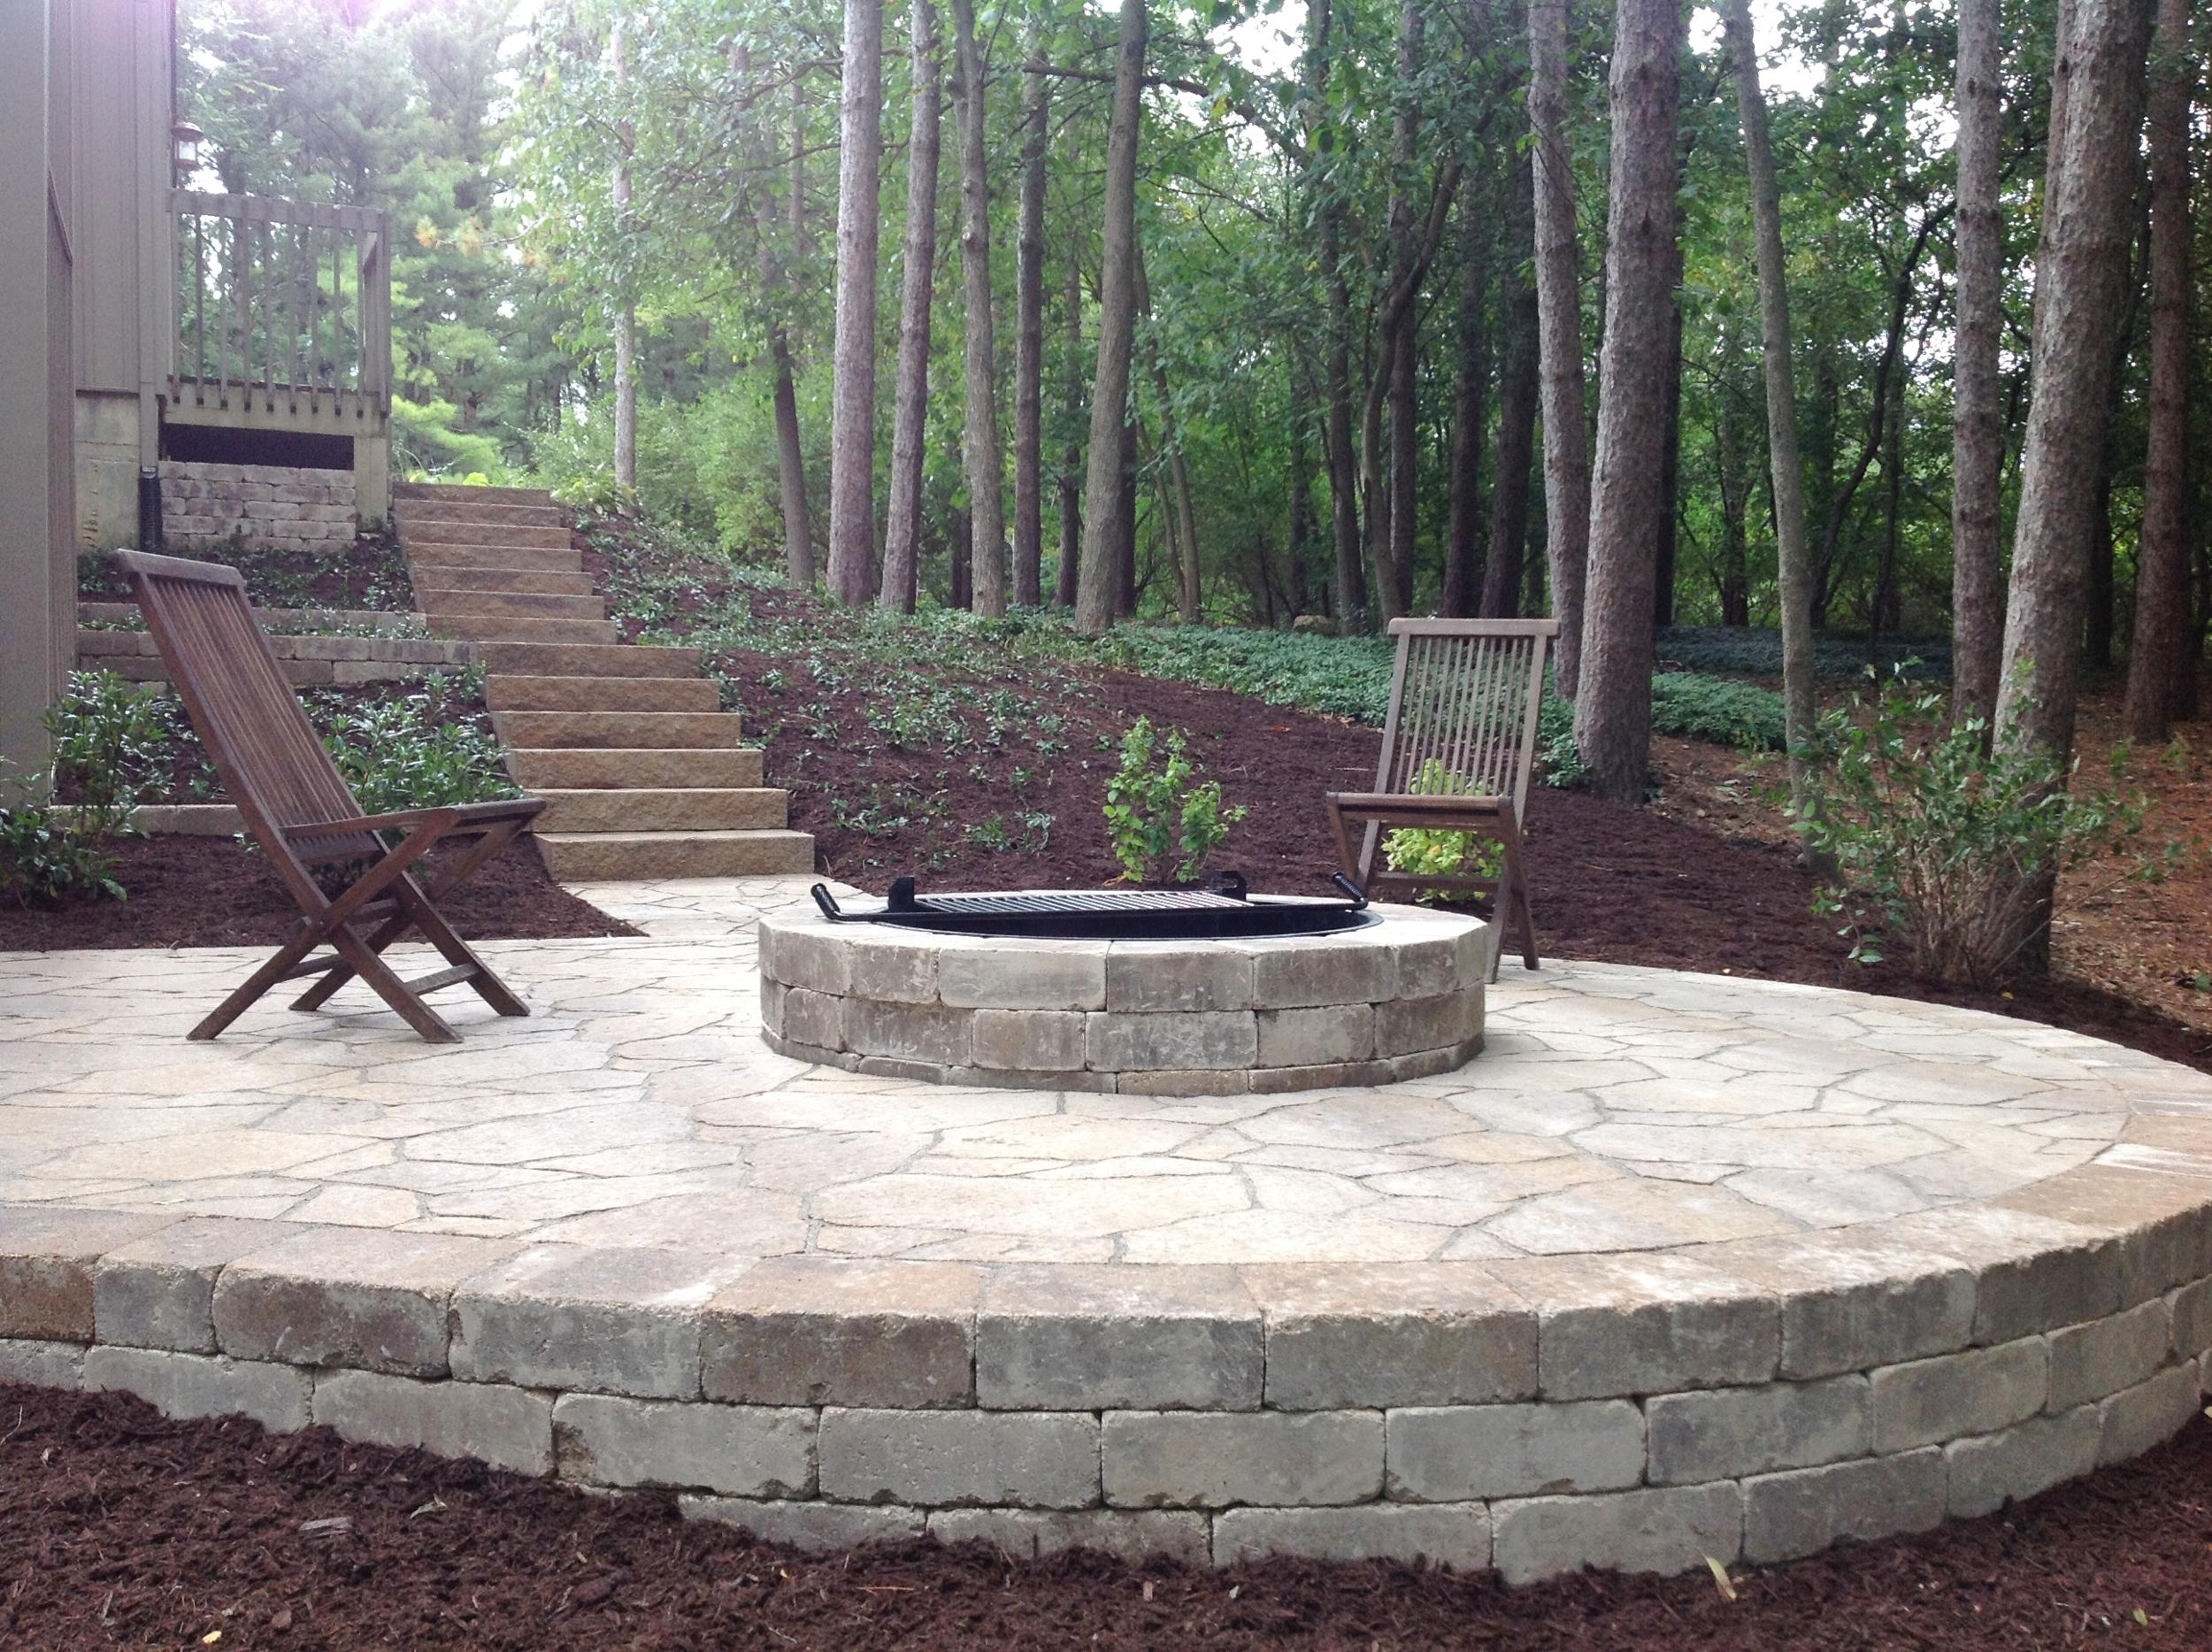 Belgard Rustic Patio & Firepit: After Patio